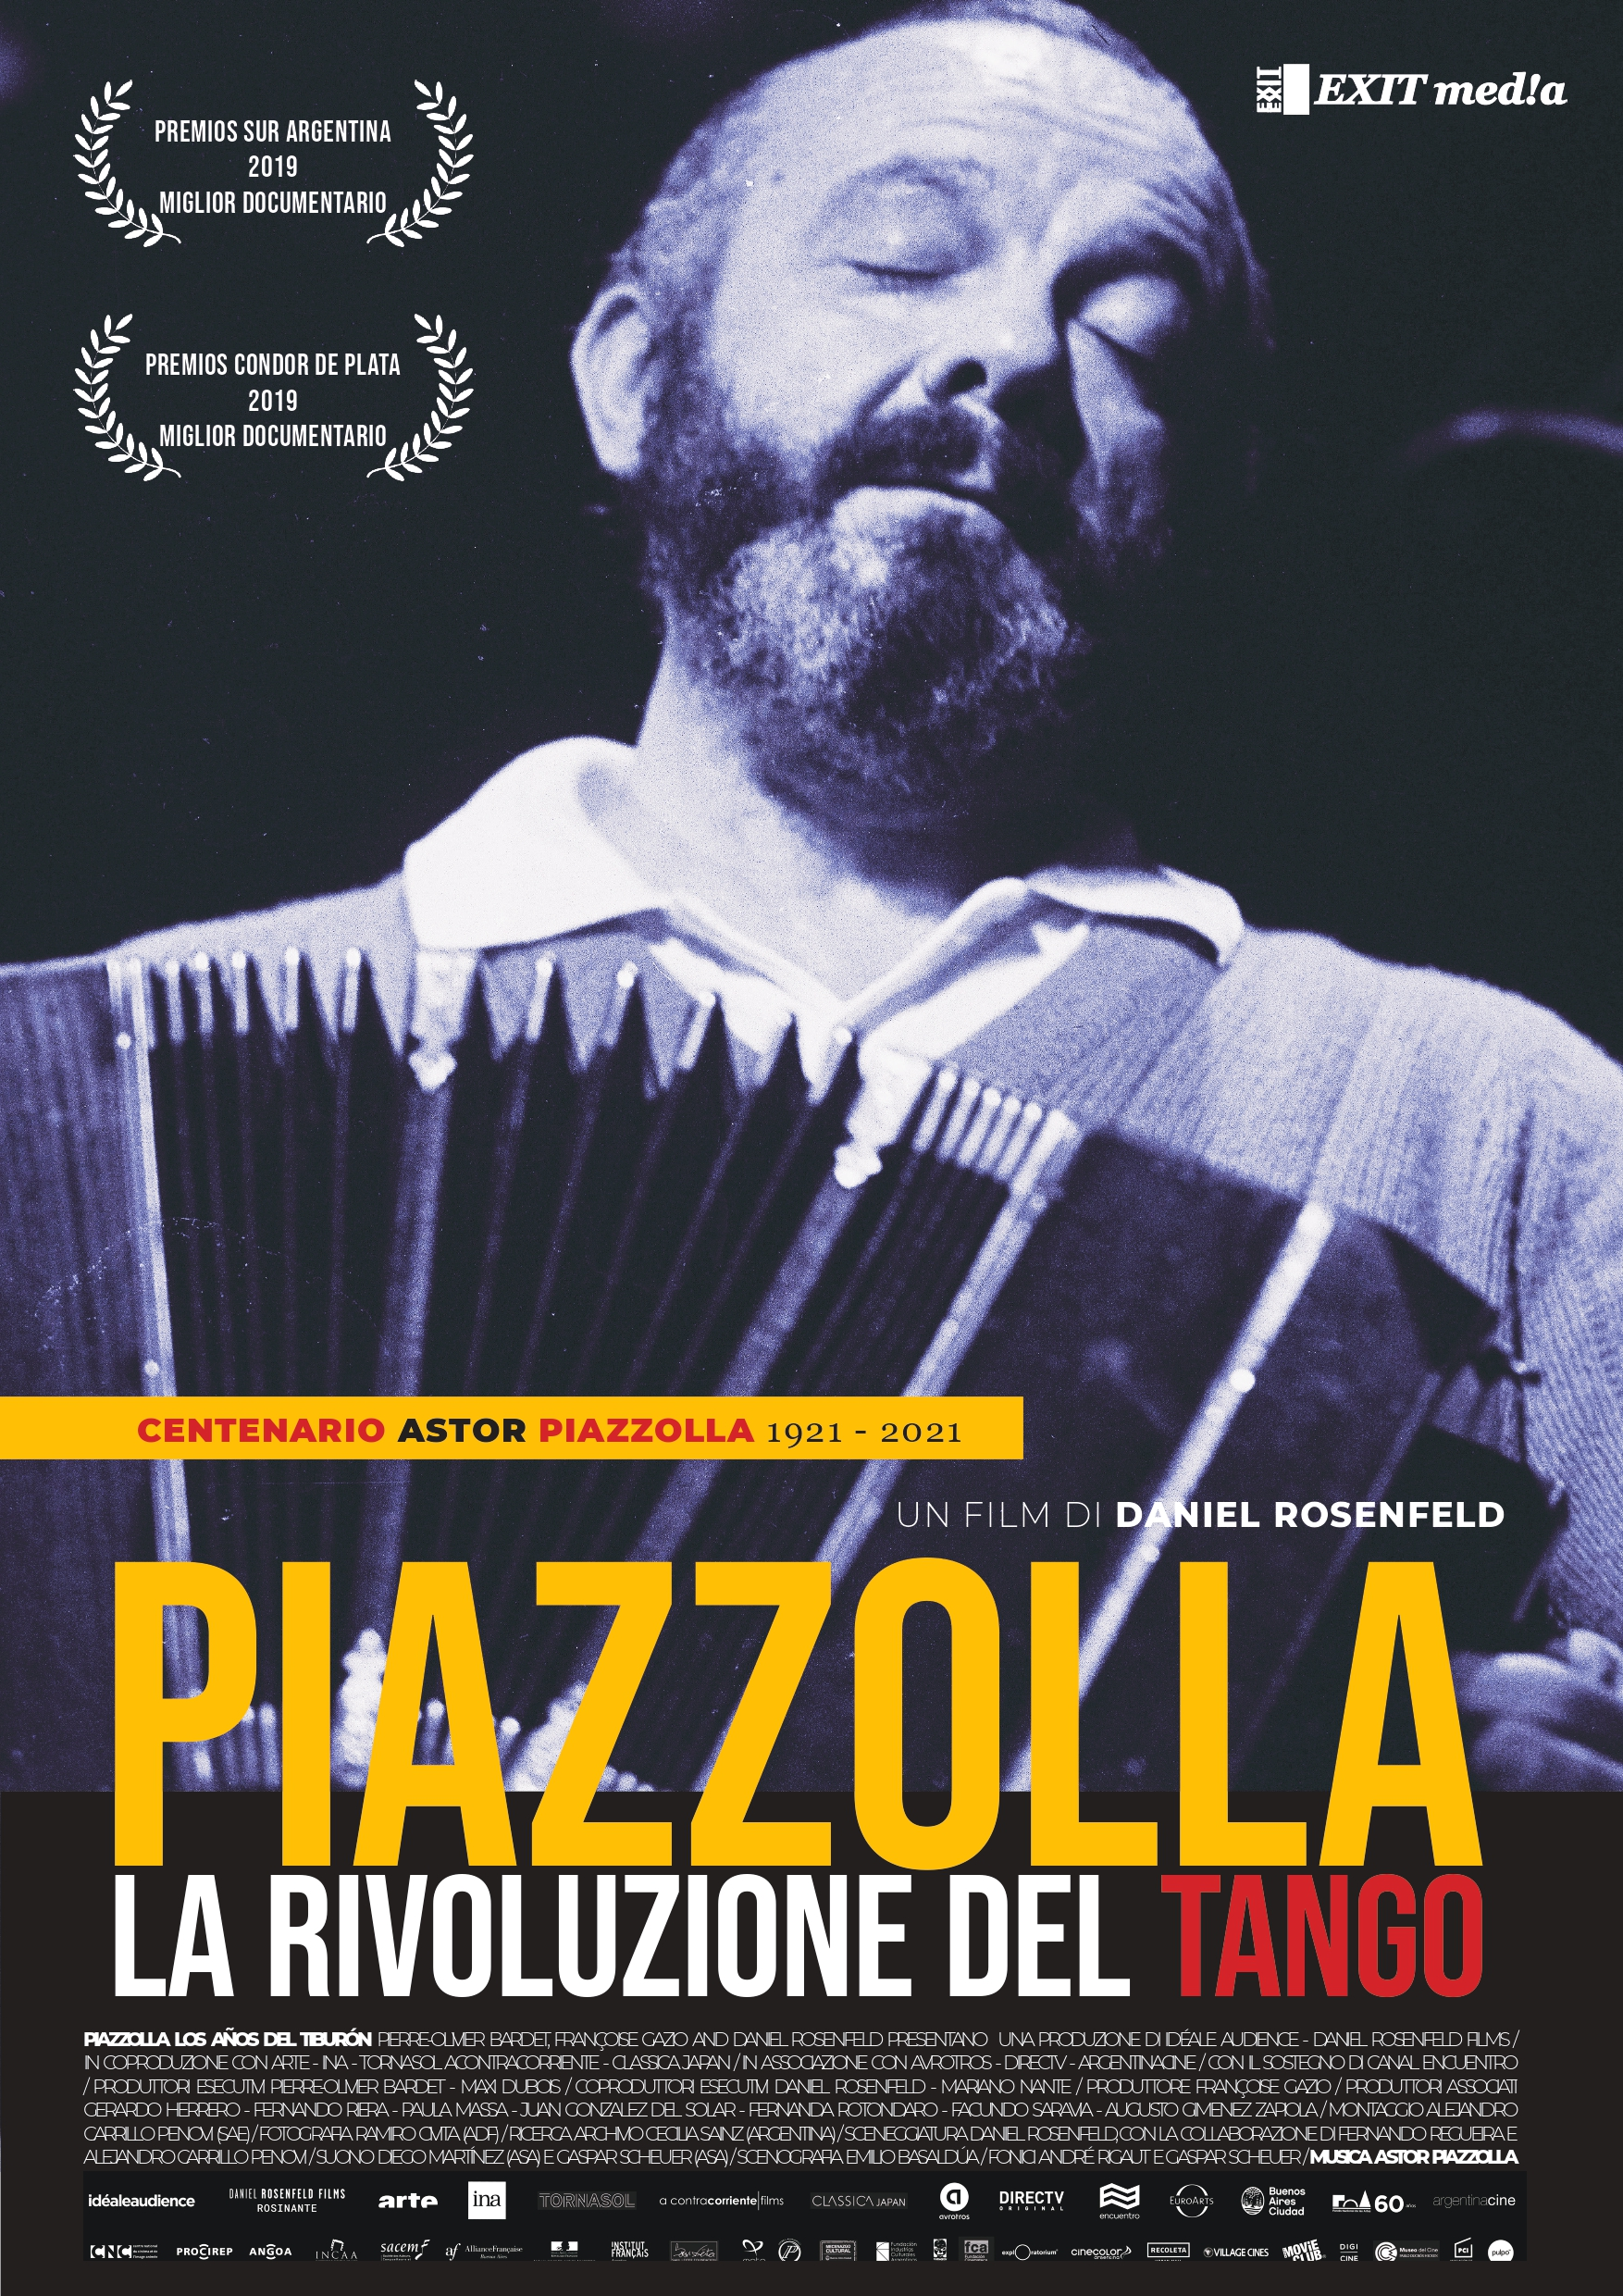 poster A3 _PIAZZOLLA_page-0001